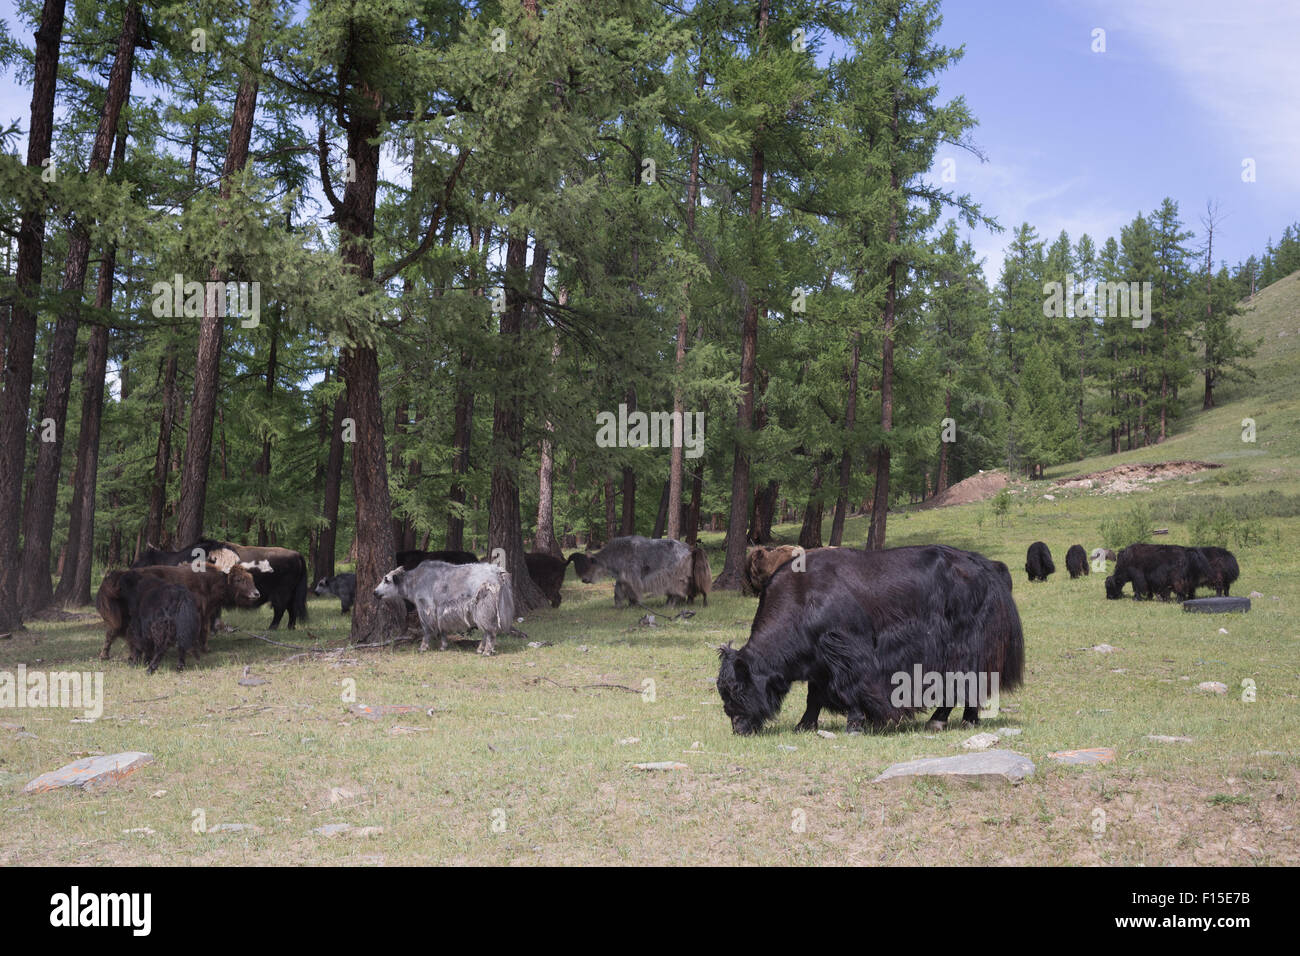 Yaks in northern Mongolia. - Stock Image